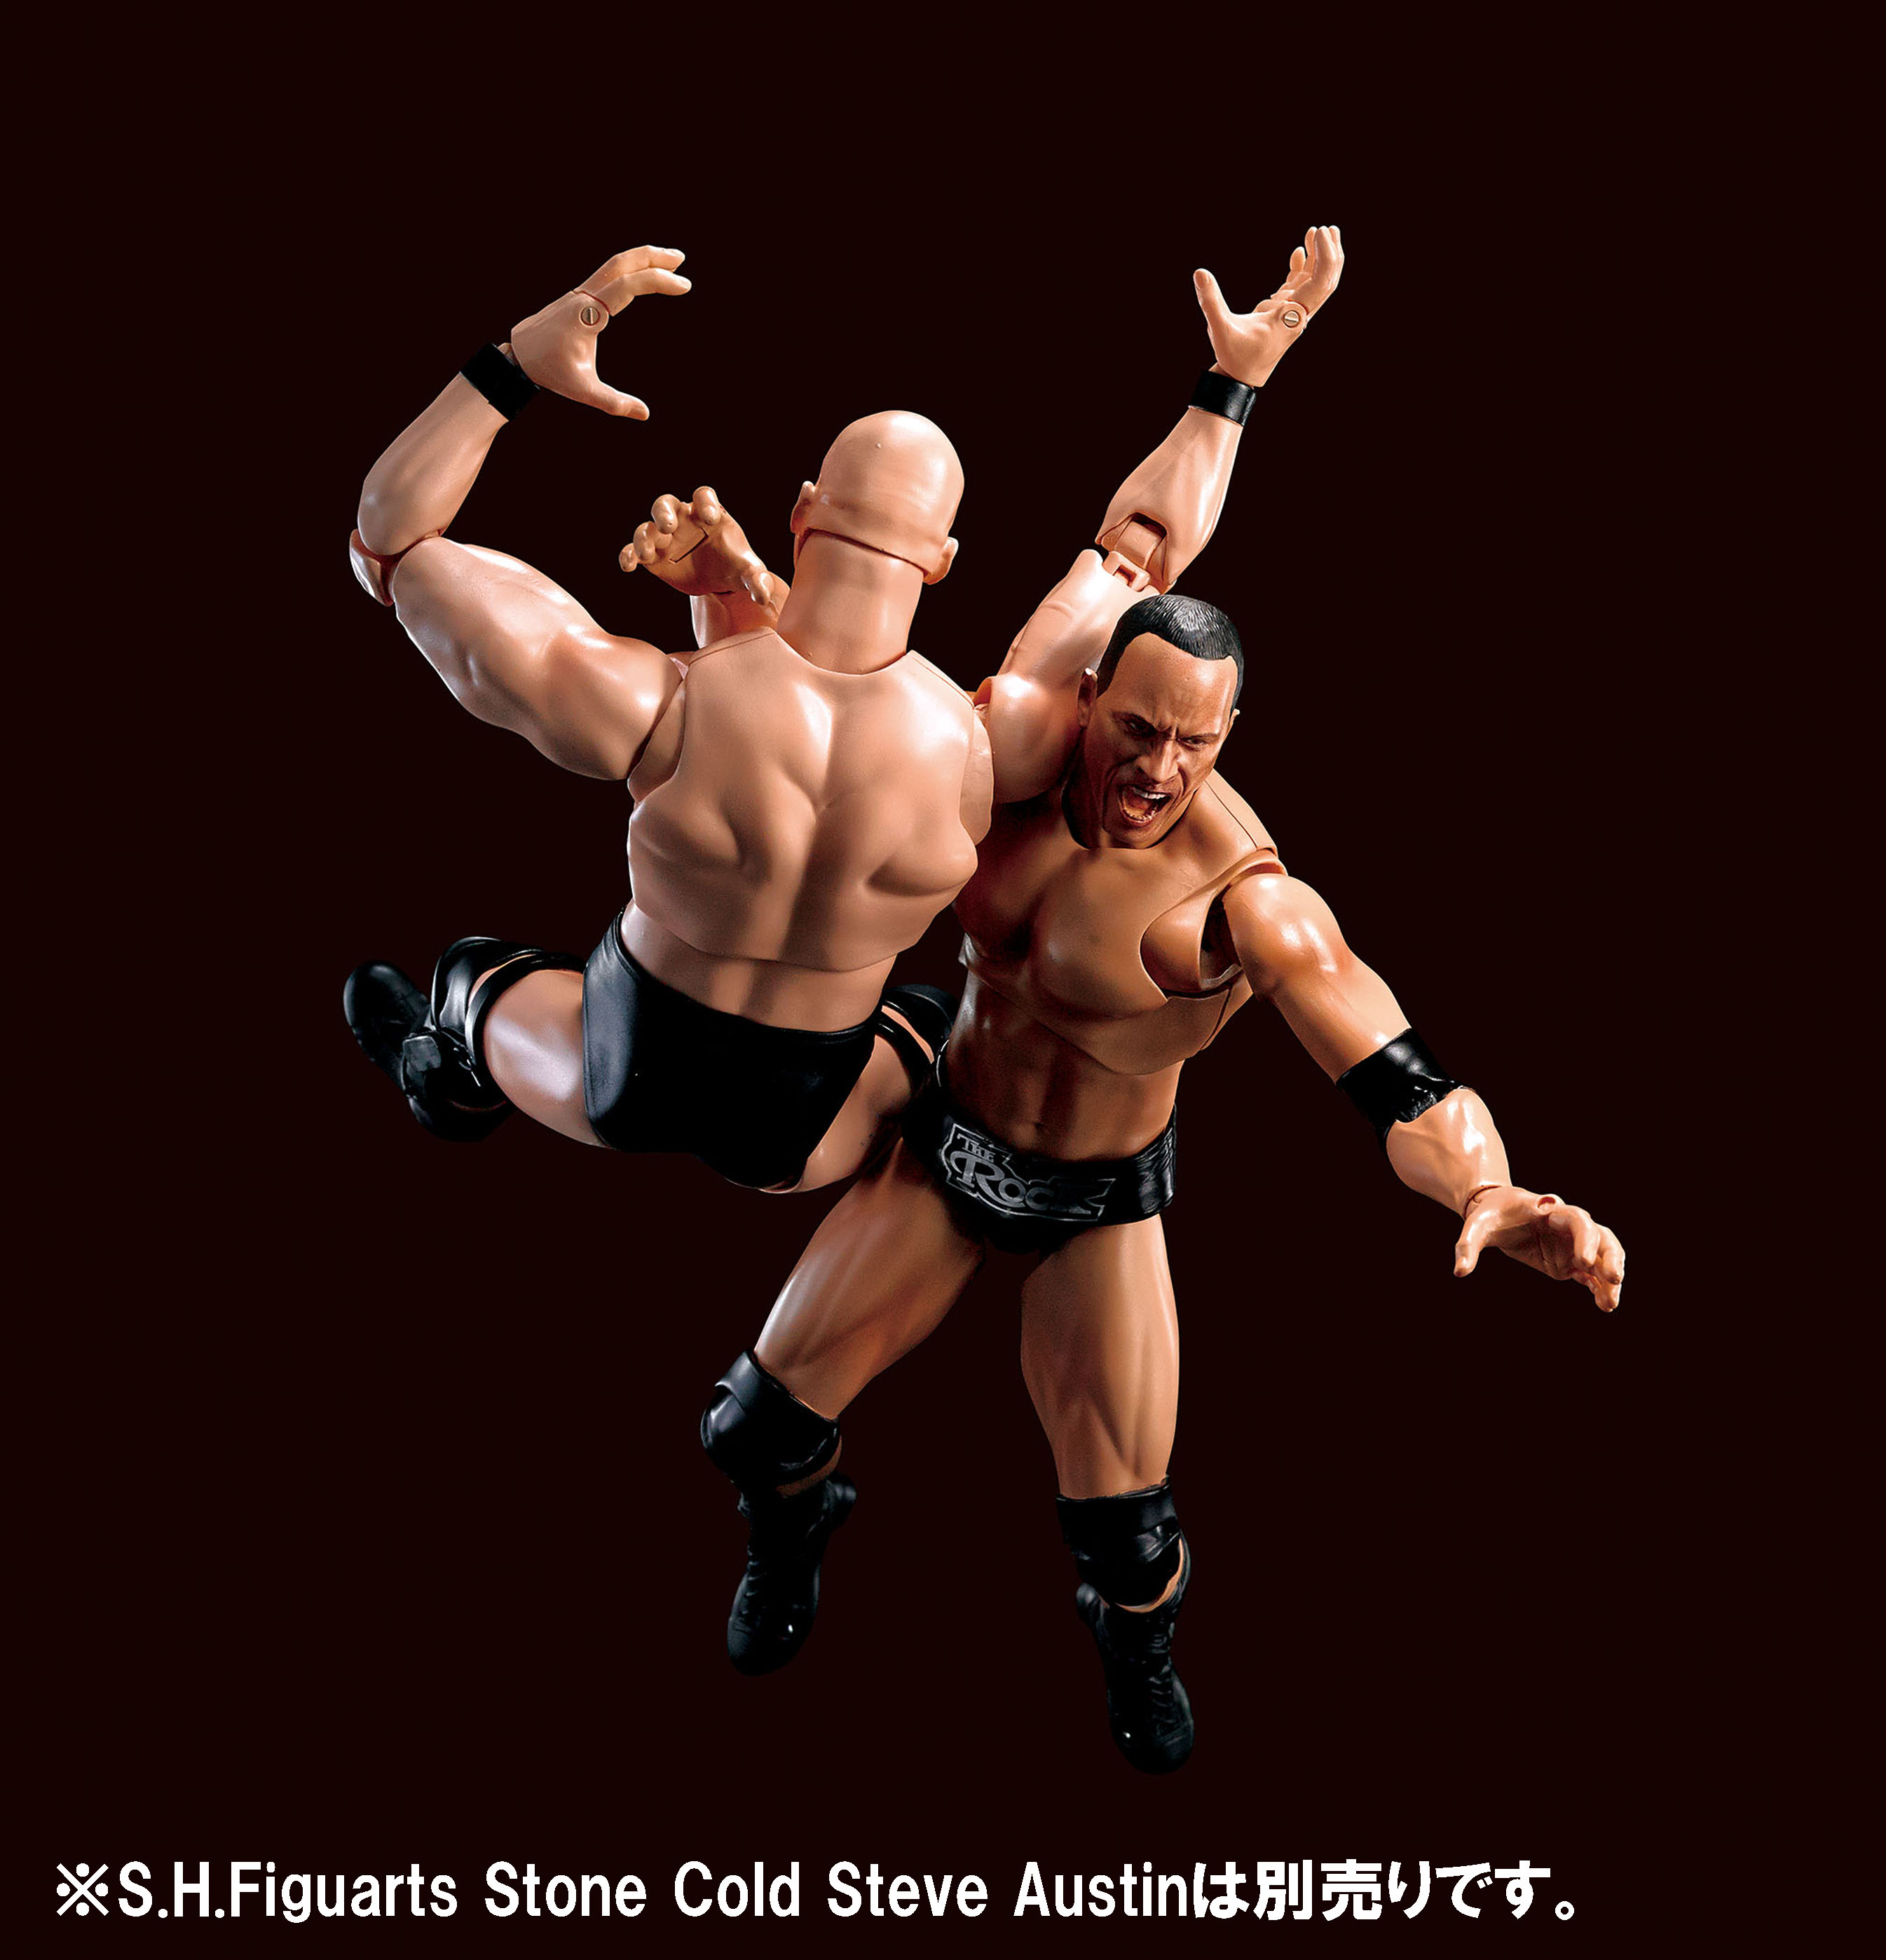 Bluefin Preview: New Figures Of Iconic WWE Wrestlers From Tamashii Nations